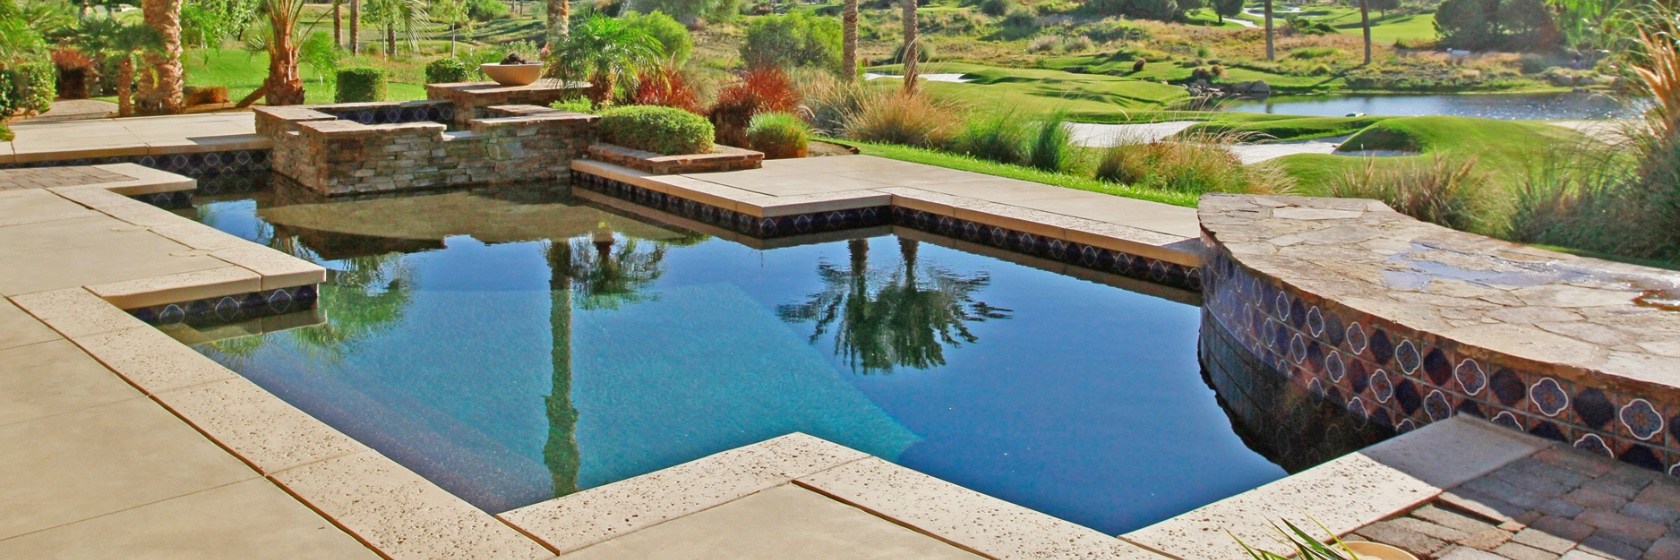 Pool Construction And Remodeling La Quinta California